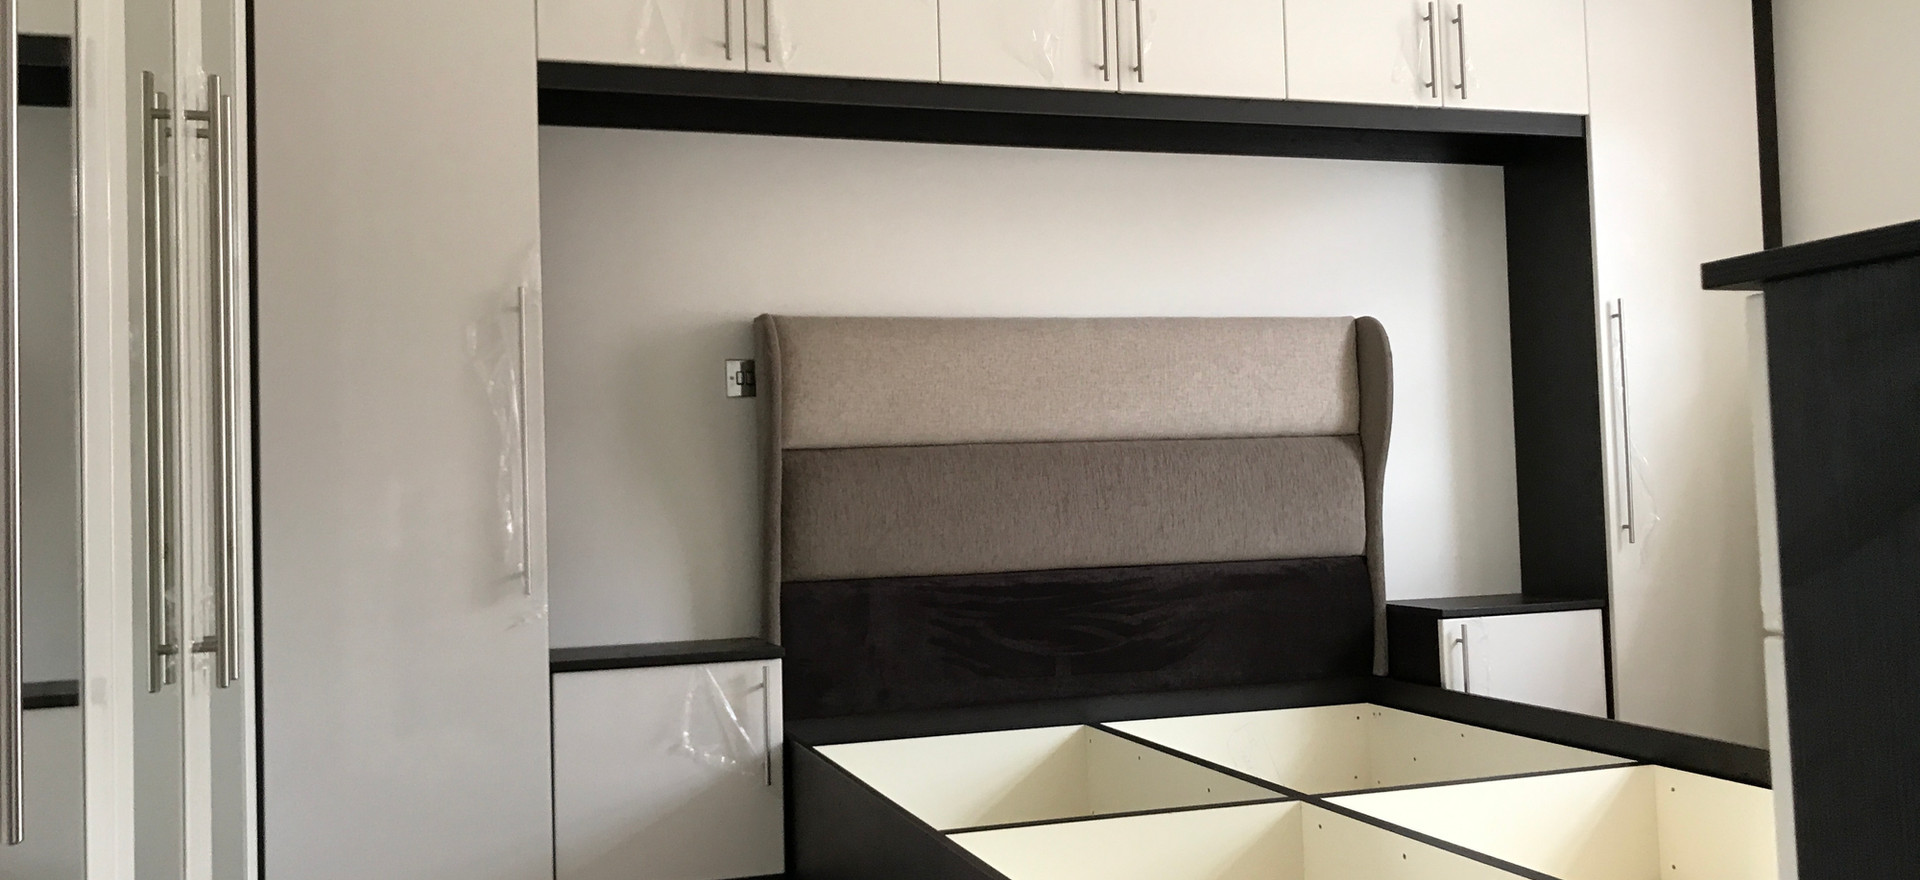 Fitted Cabinets Around Bed